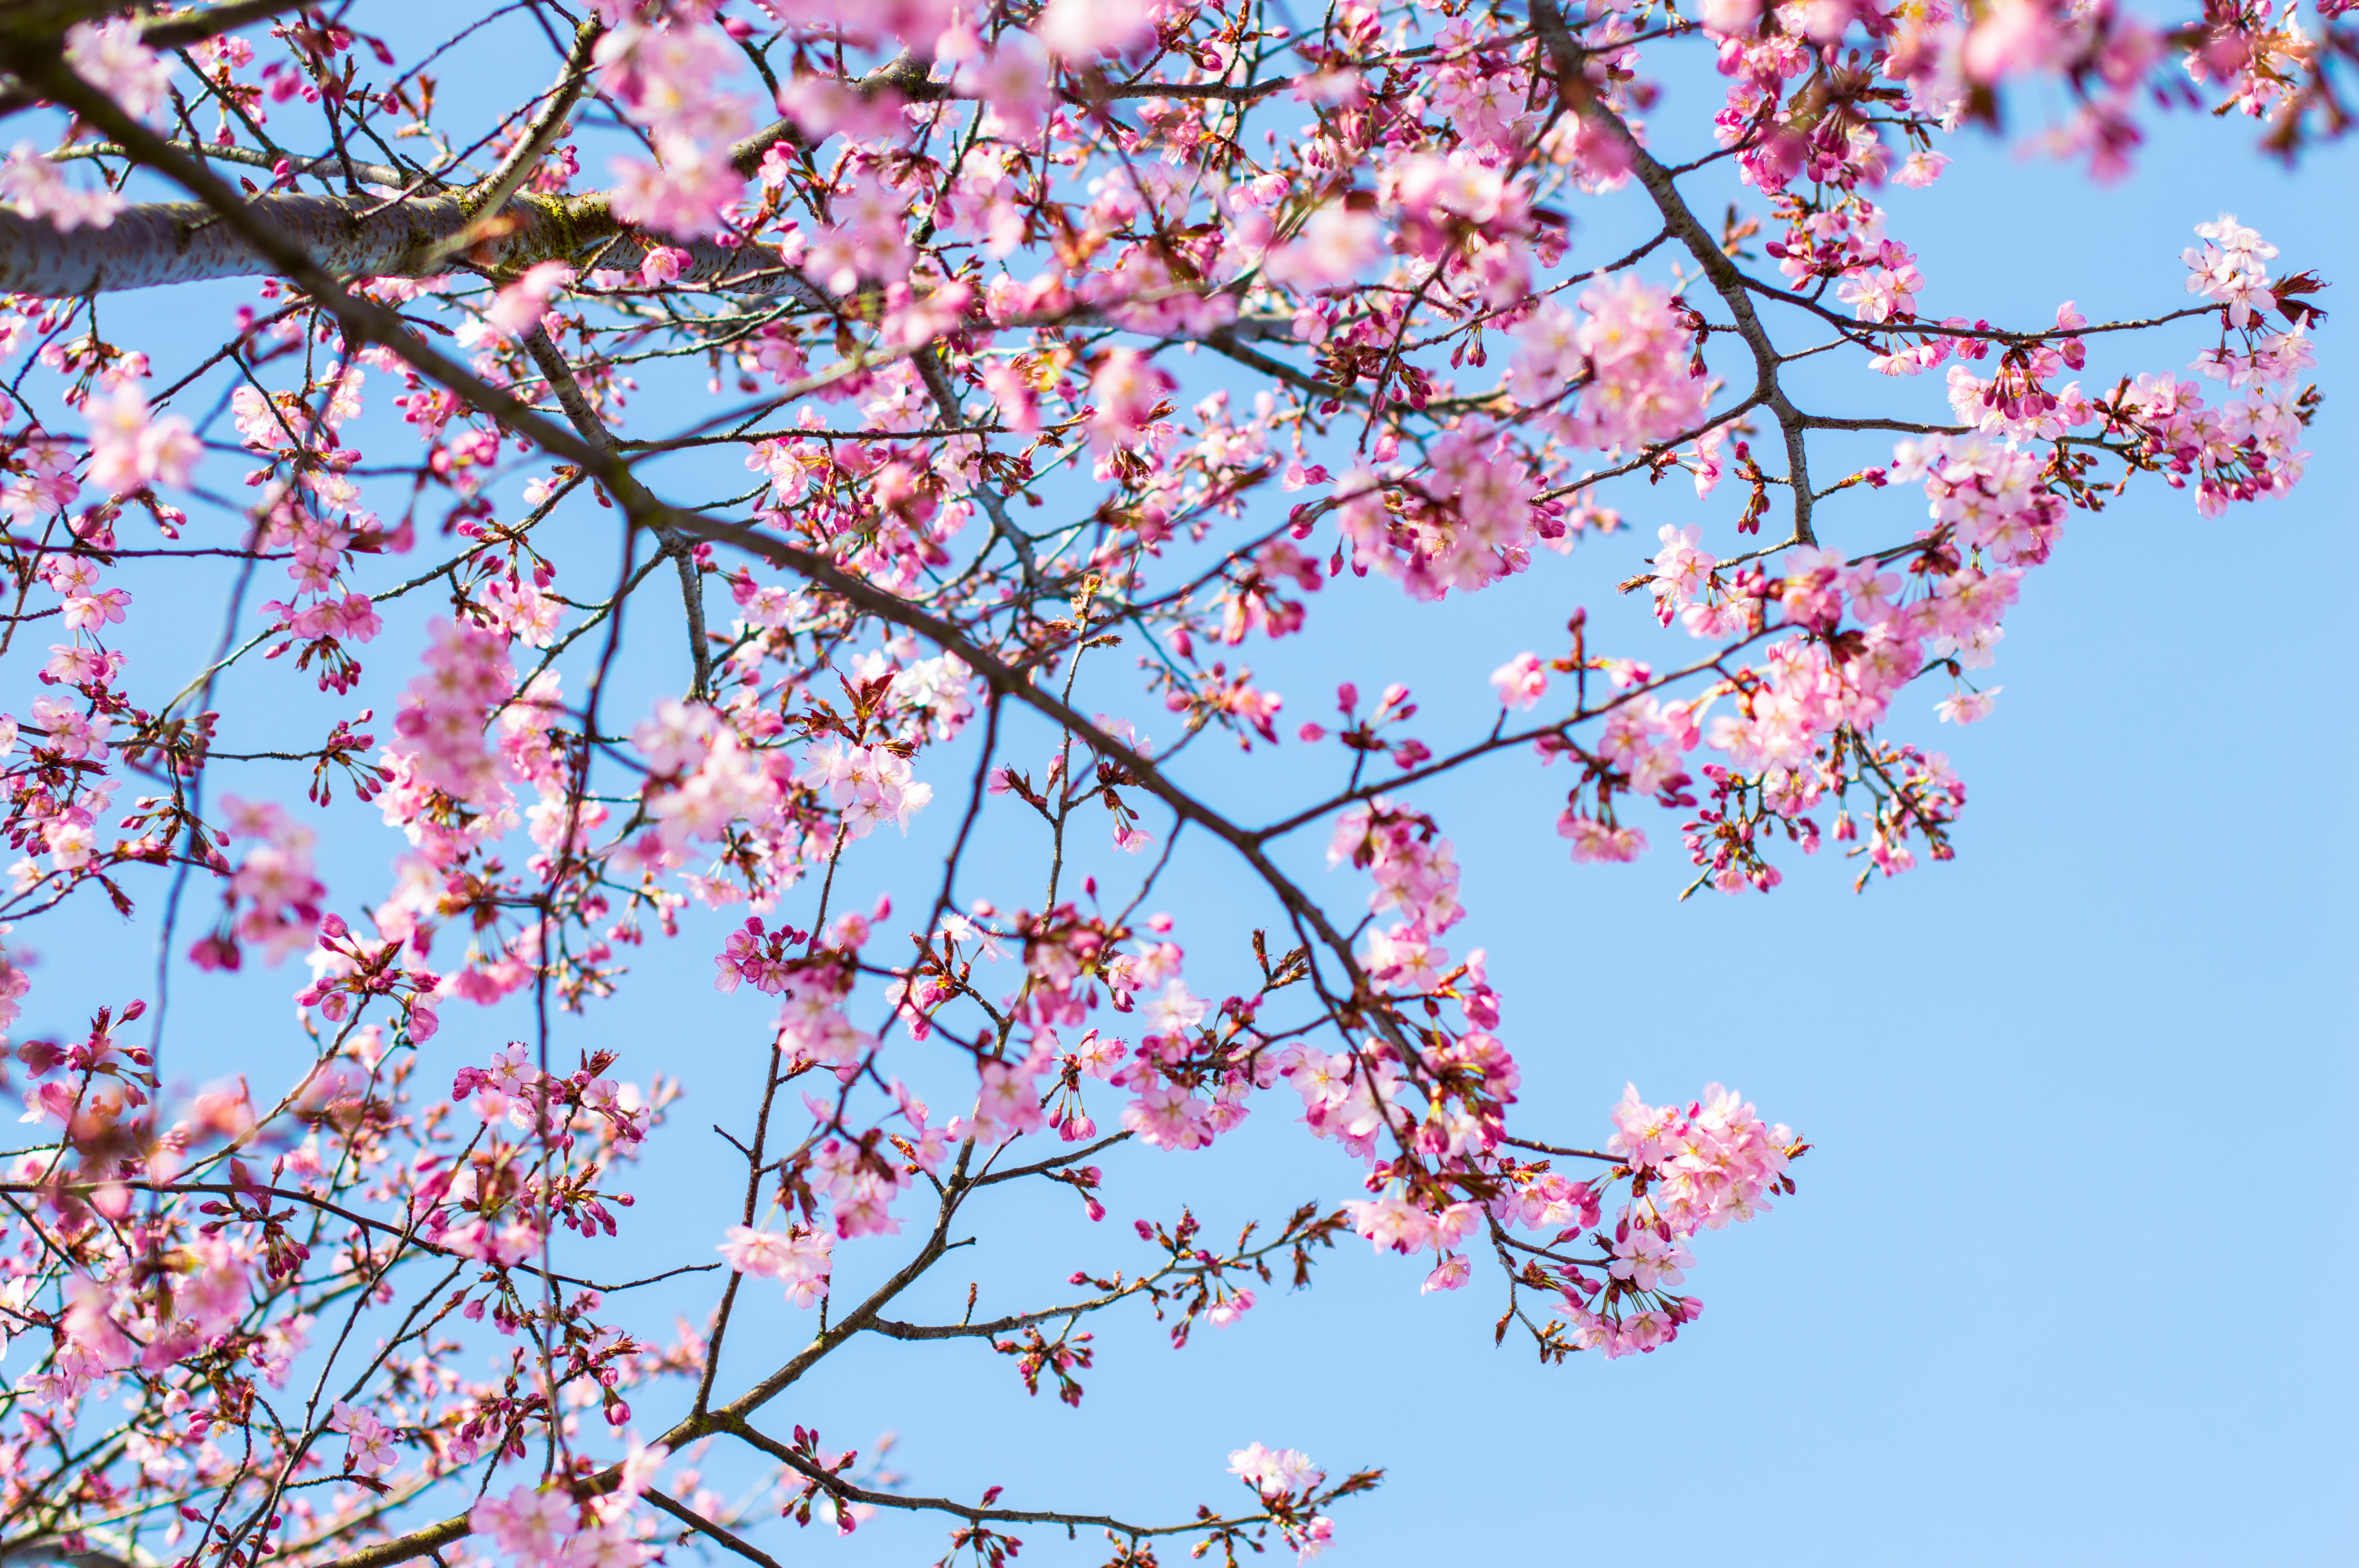 cherry blossom tree under clear blue sky